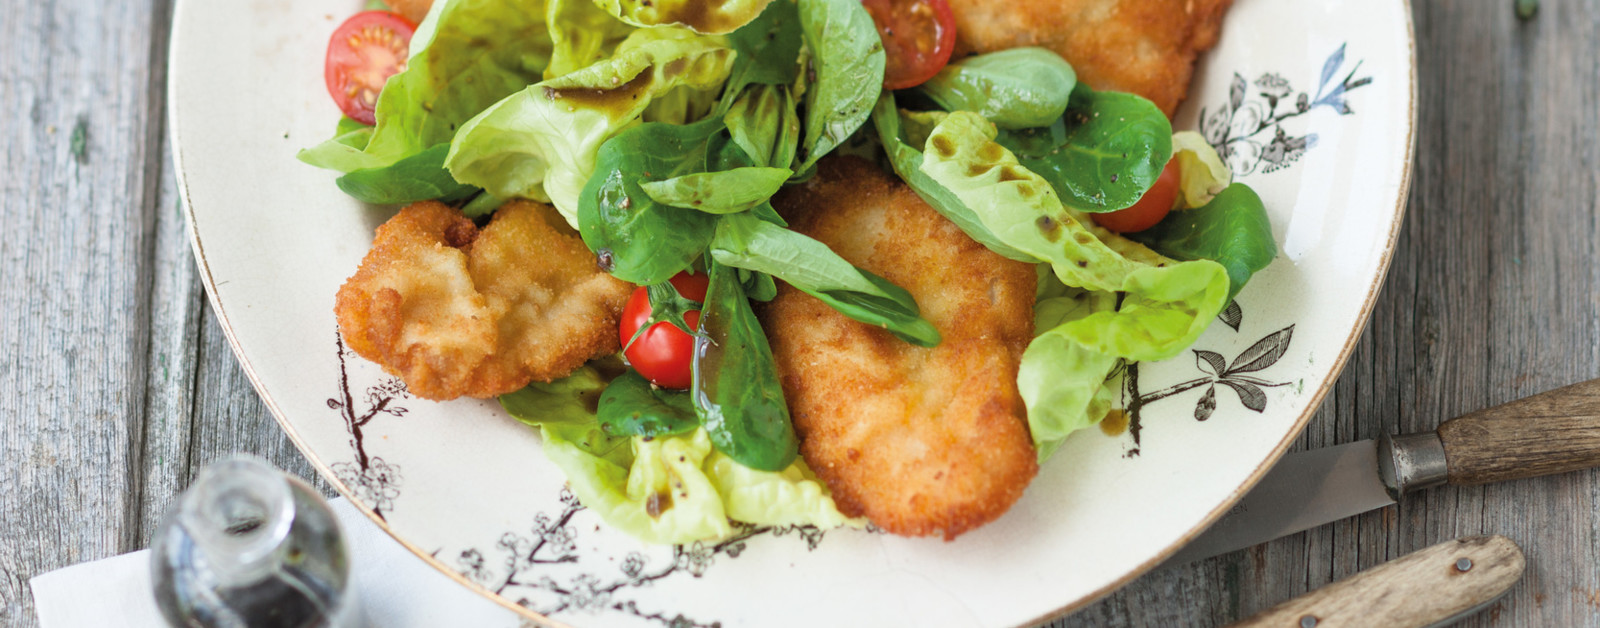 Recipe For Styrian Breaded Chicken Salad How To Make It